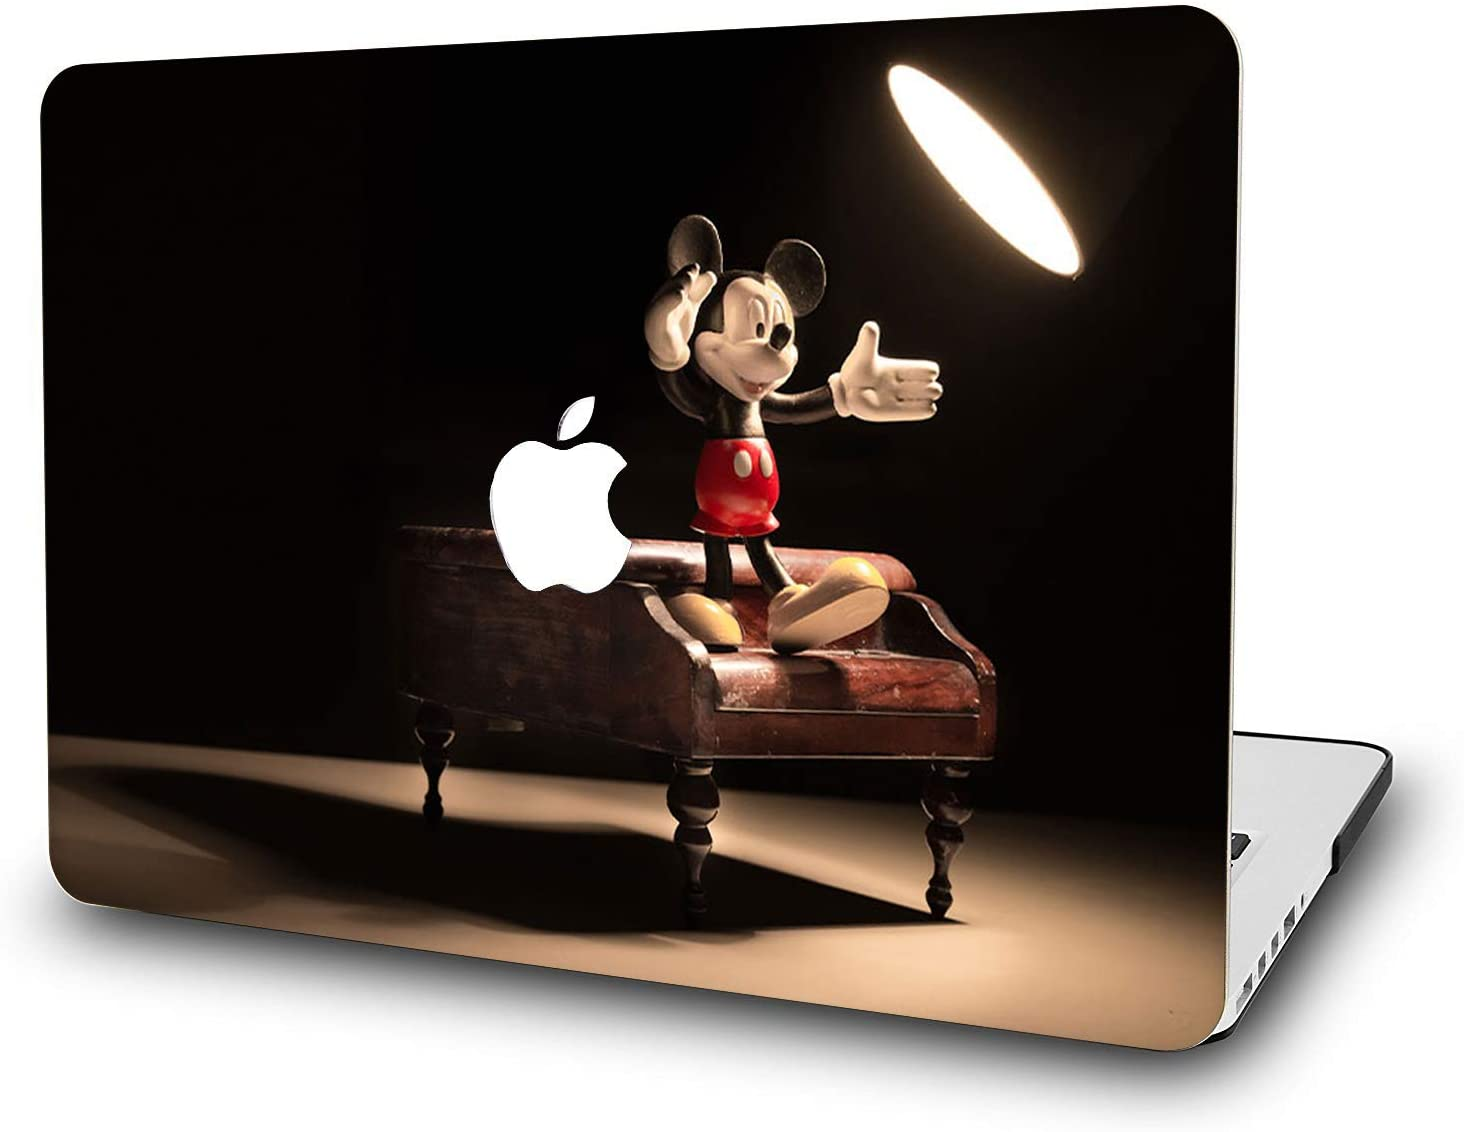 "MacBook Air 11 Inch Case - L2W Laptop Accessories Hard Plastic Printed Cover for Apple Mac Air 11.6"" with Two USB 3 Ports, Model: A1465/A1370, Protection Shell of Design Mickey"